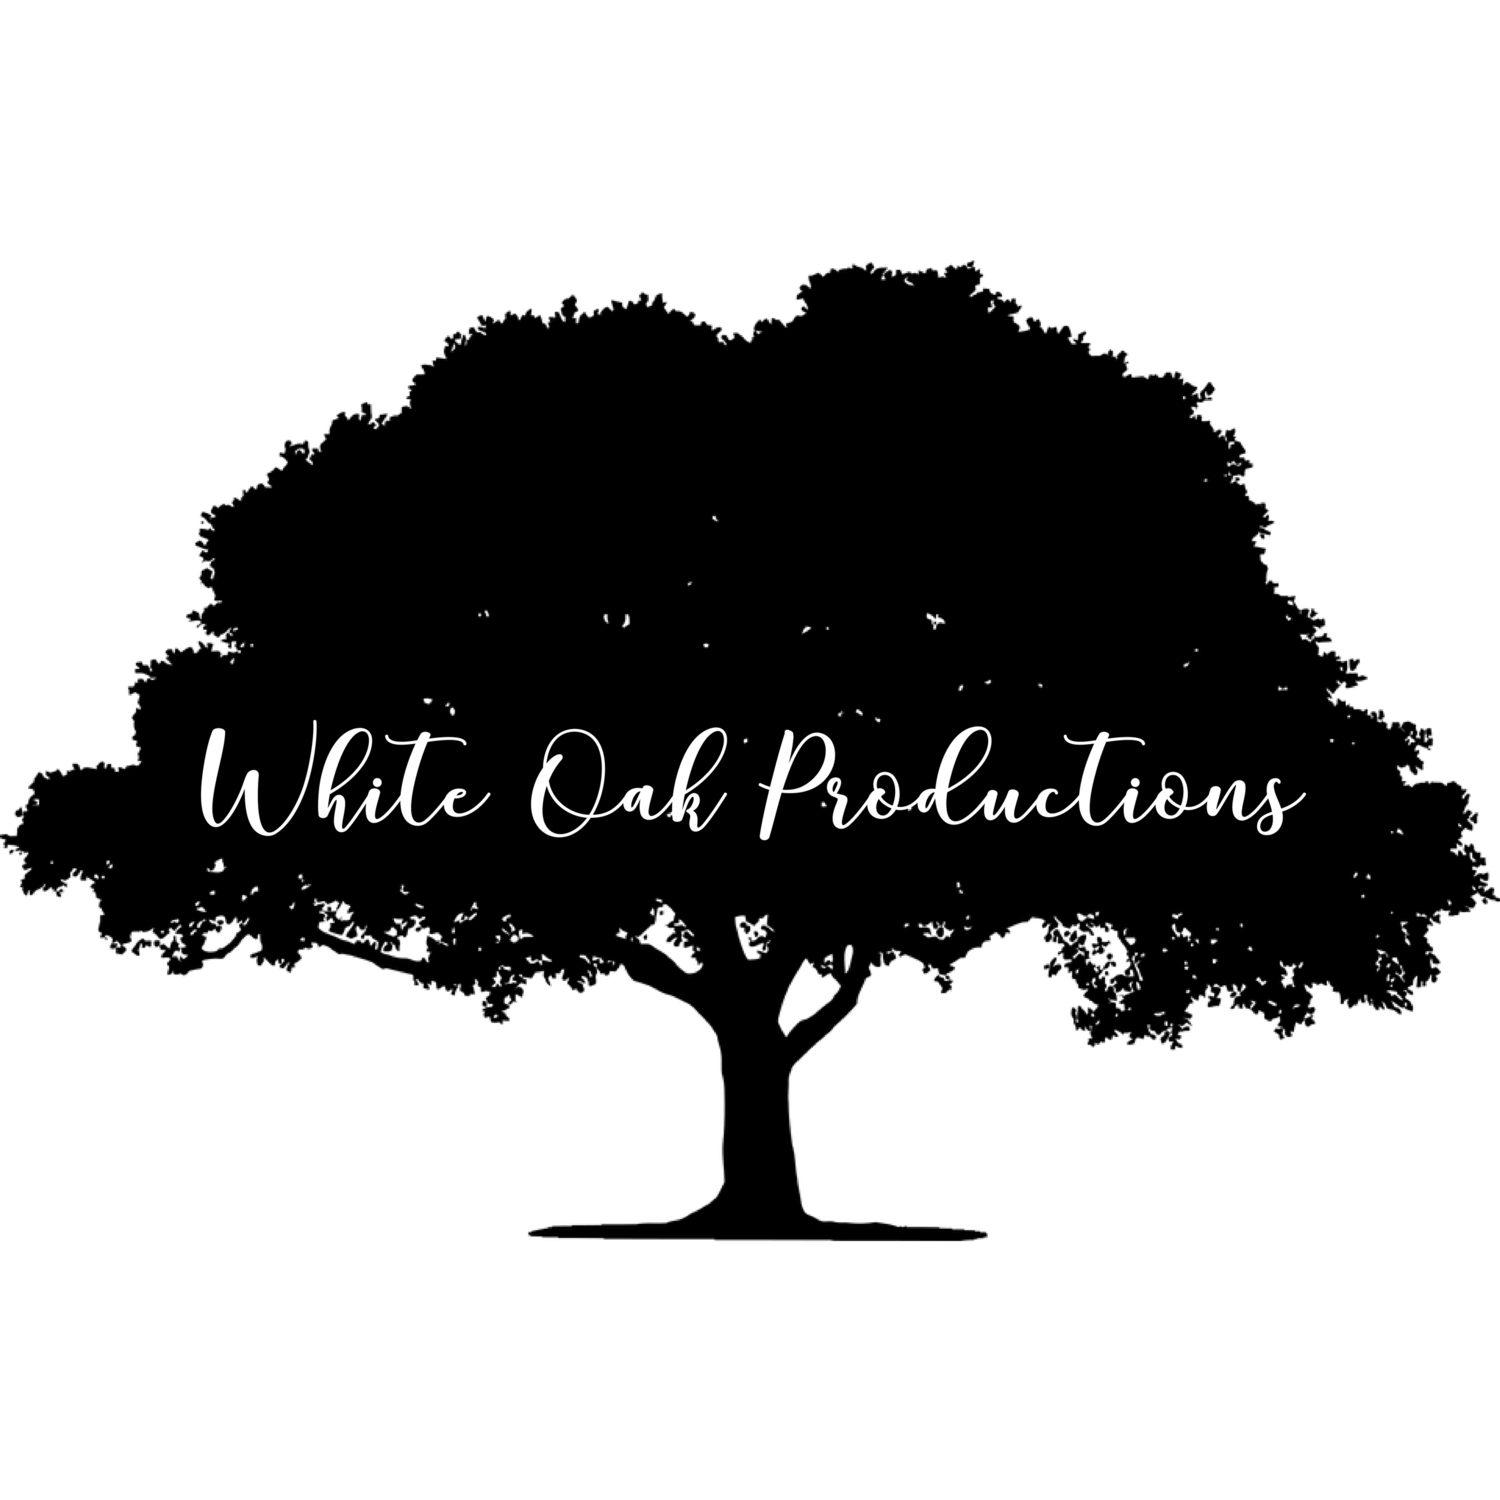 White Oak Productions